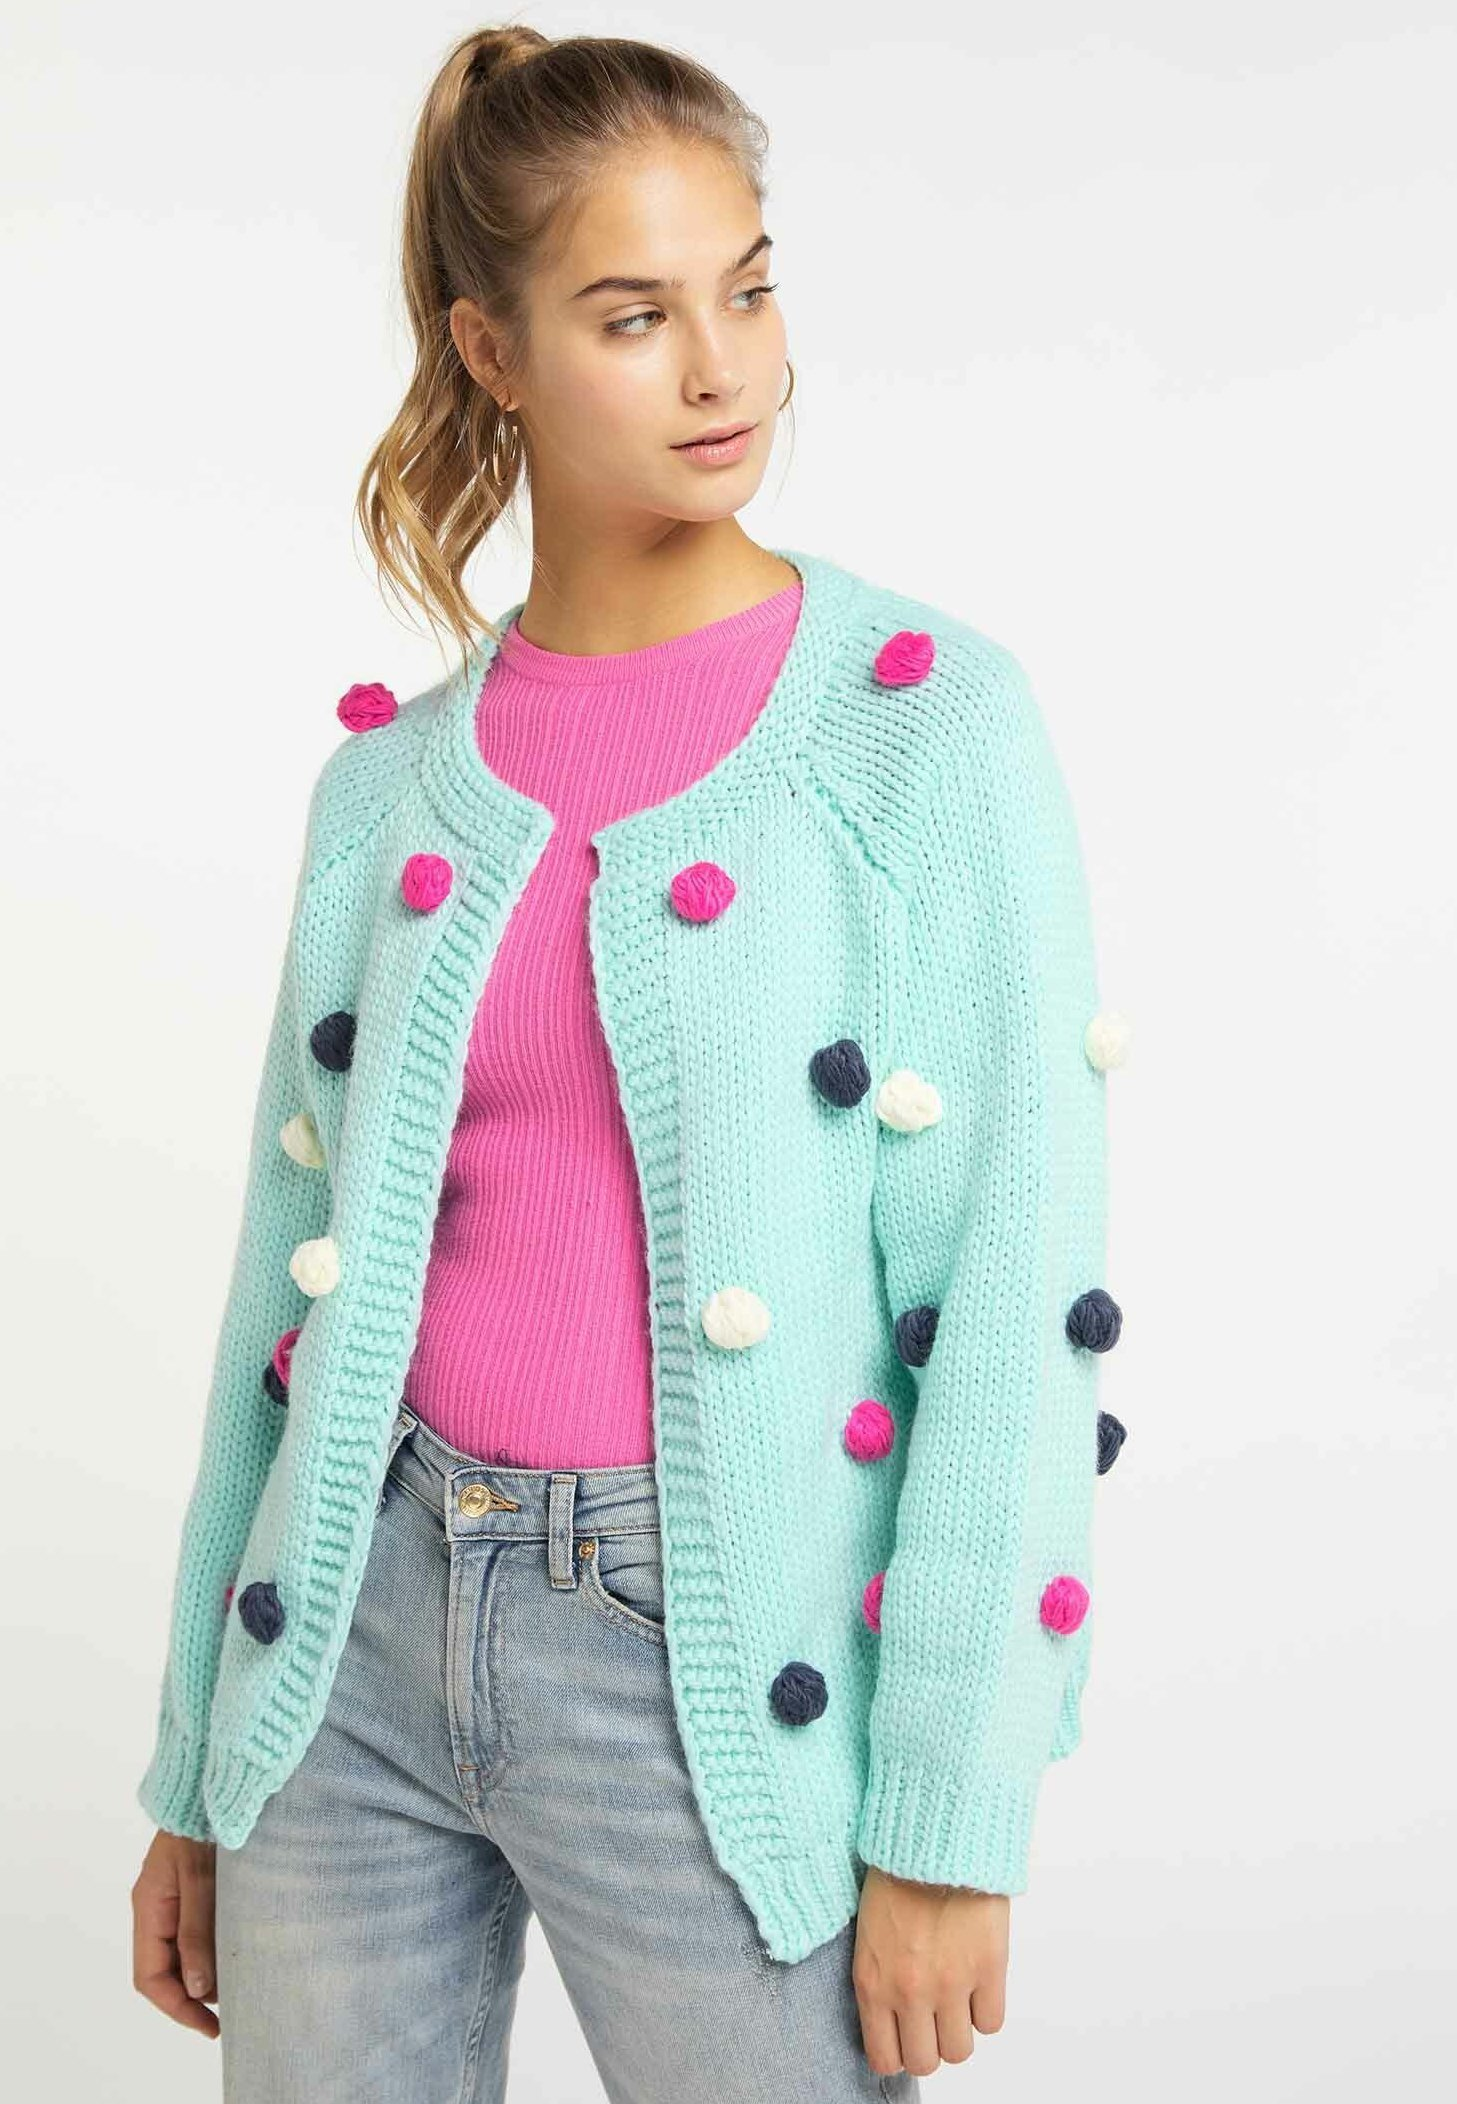 Fast Express Women's Clothing myMo Cardigan mint vDY2Ogarr